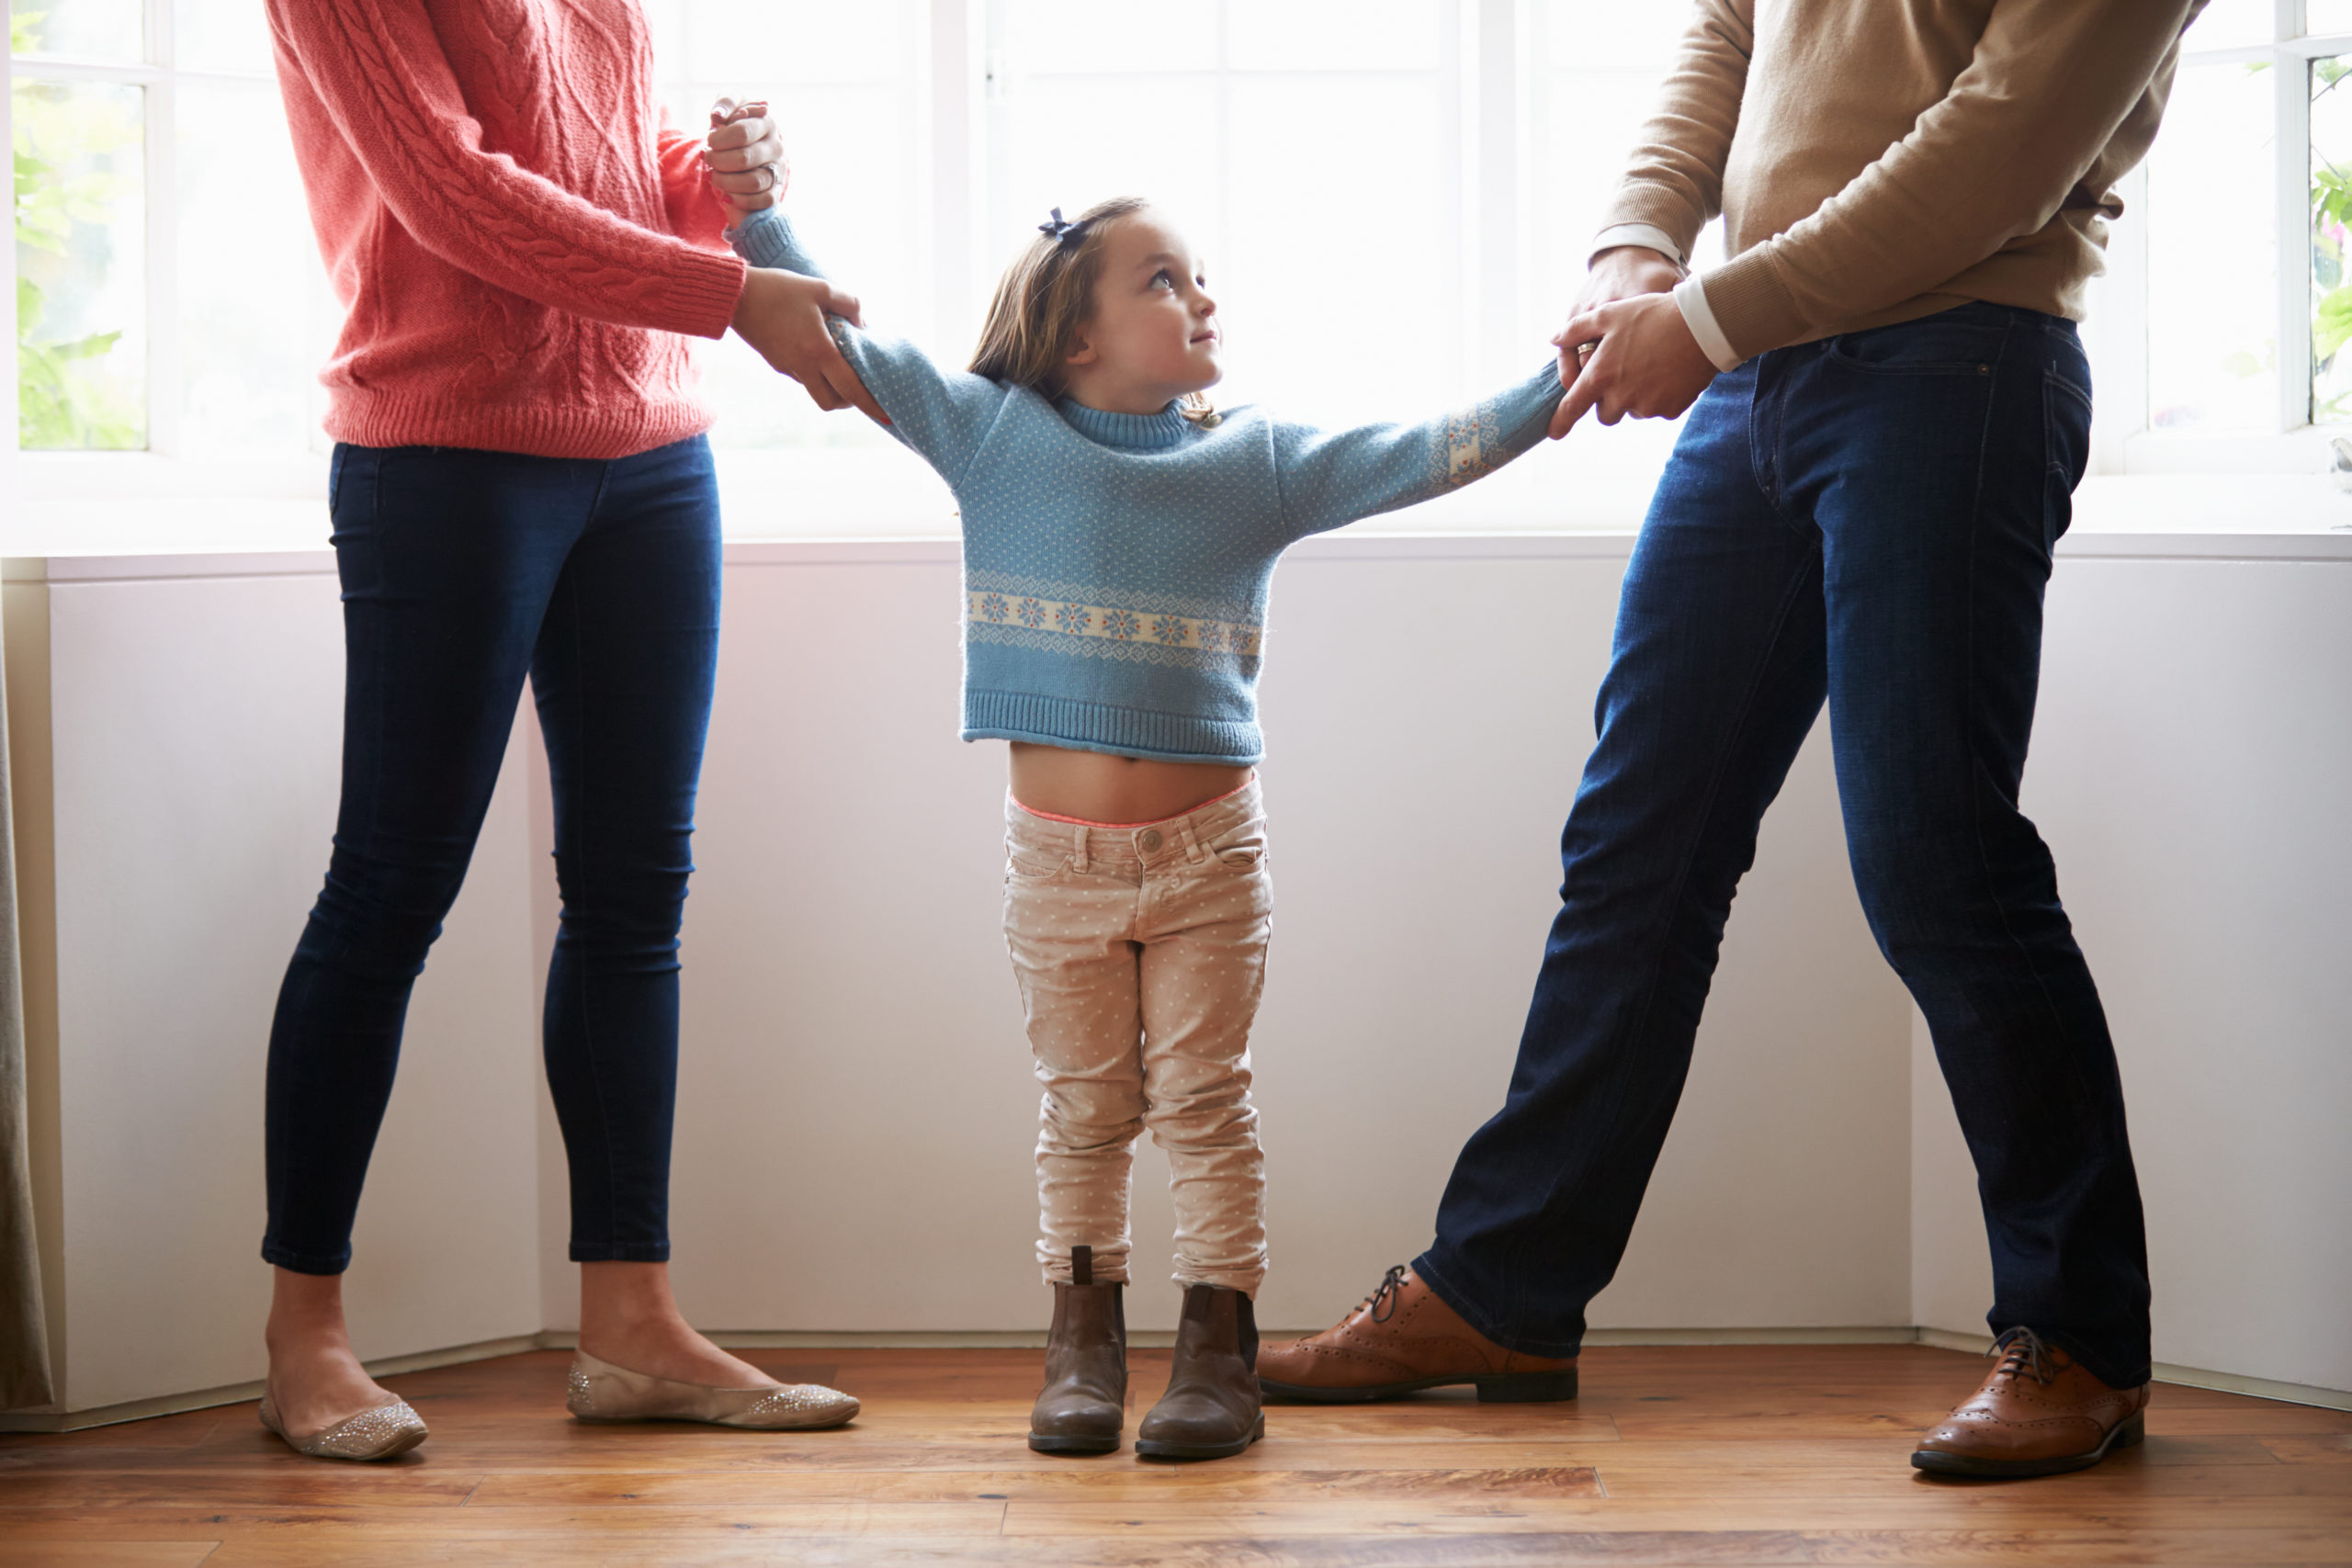 Daughter stuck in the middle of her parents